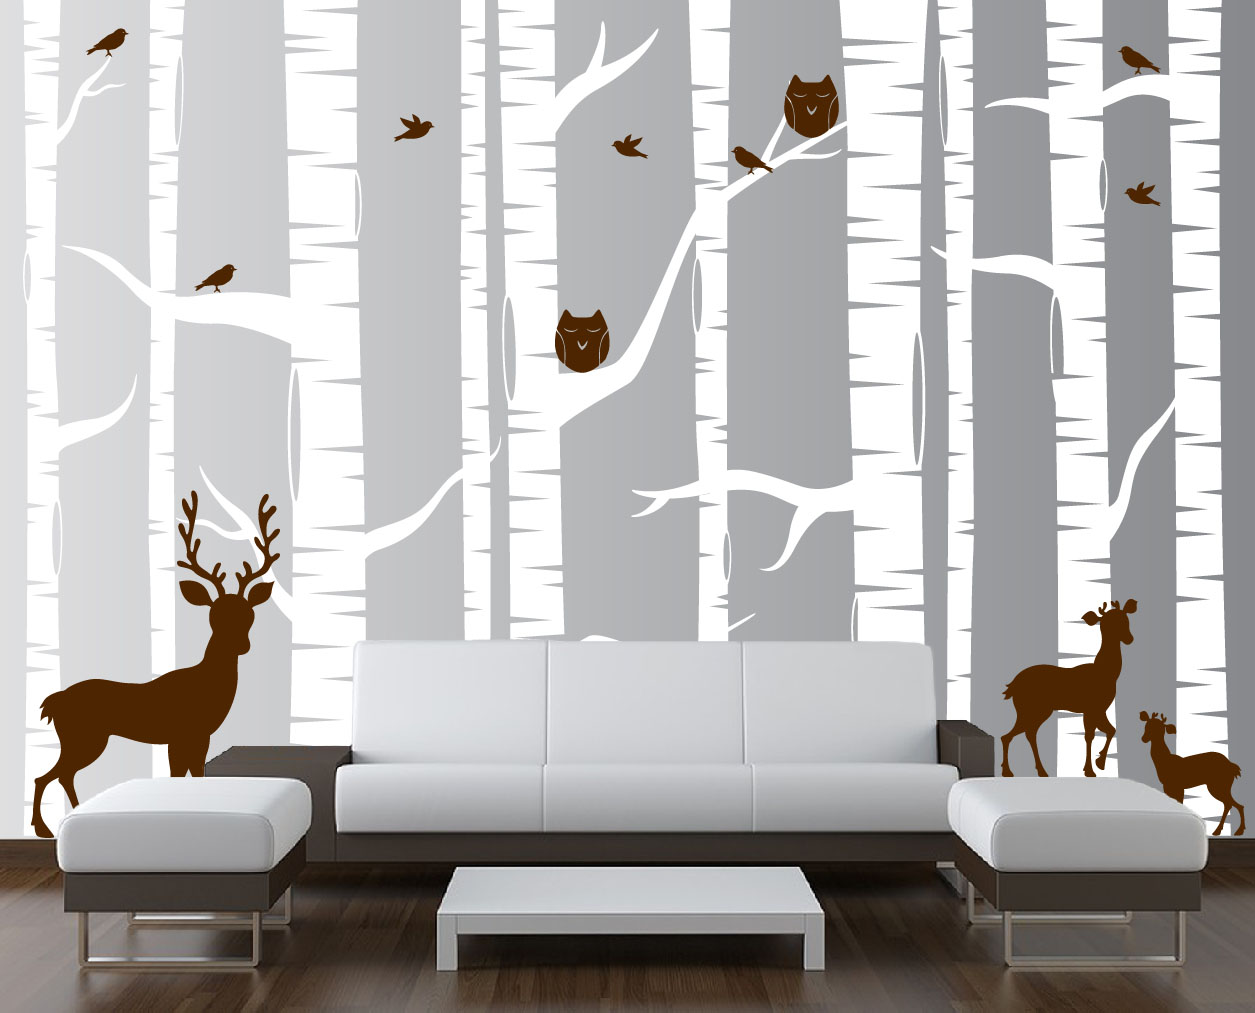 birch-tree-wall-decal-white-woodland-1323.jpg